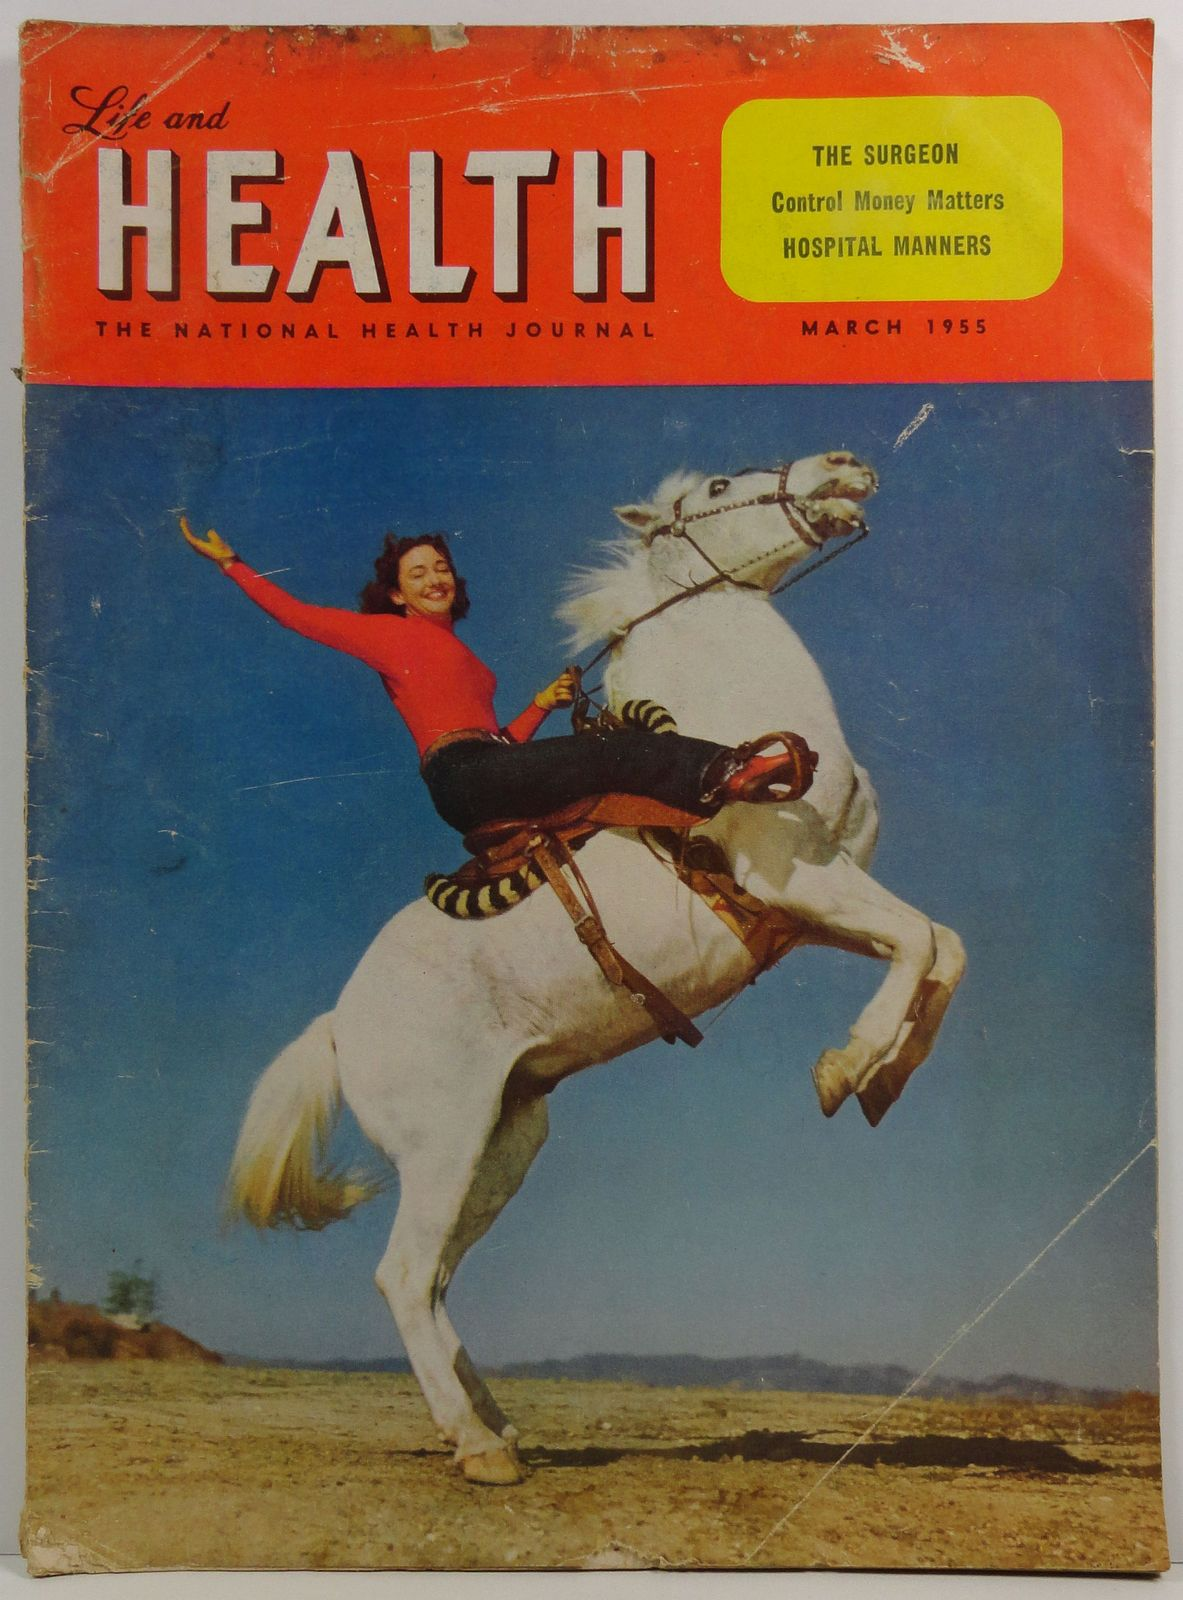 Life and Health Magazine March 1955 The National Health Journal